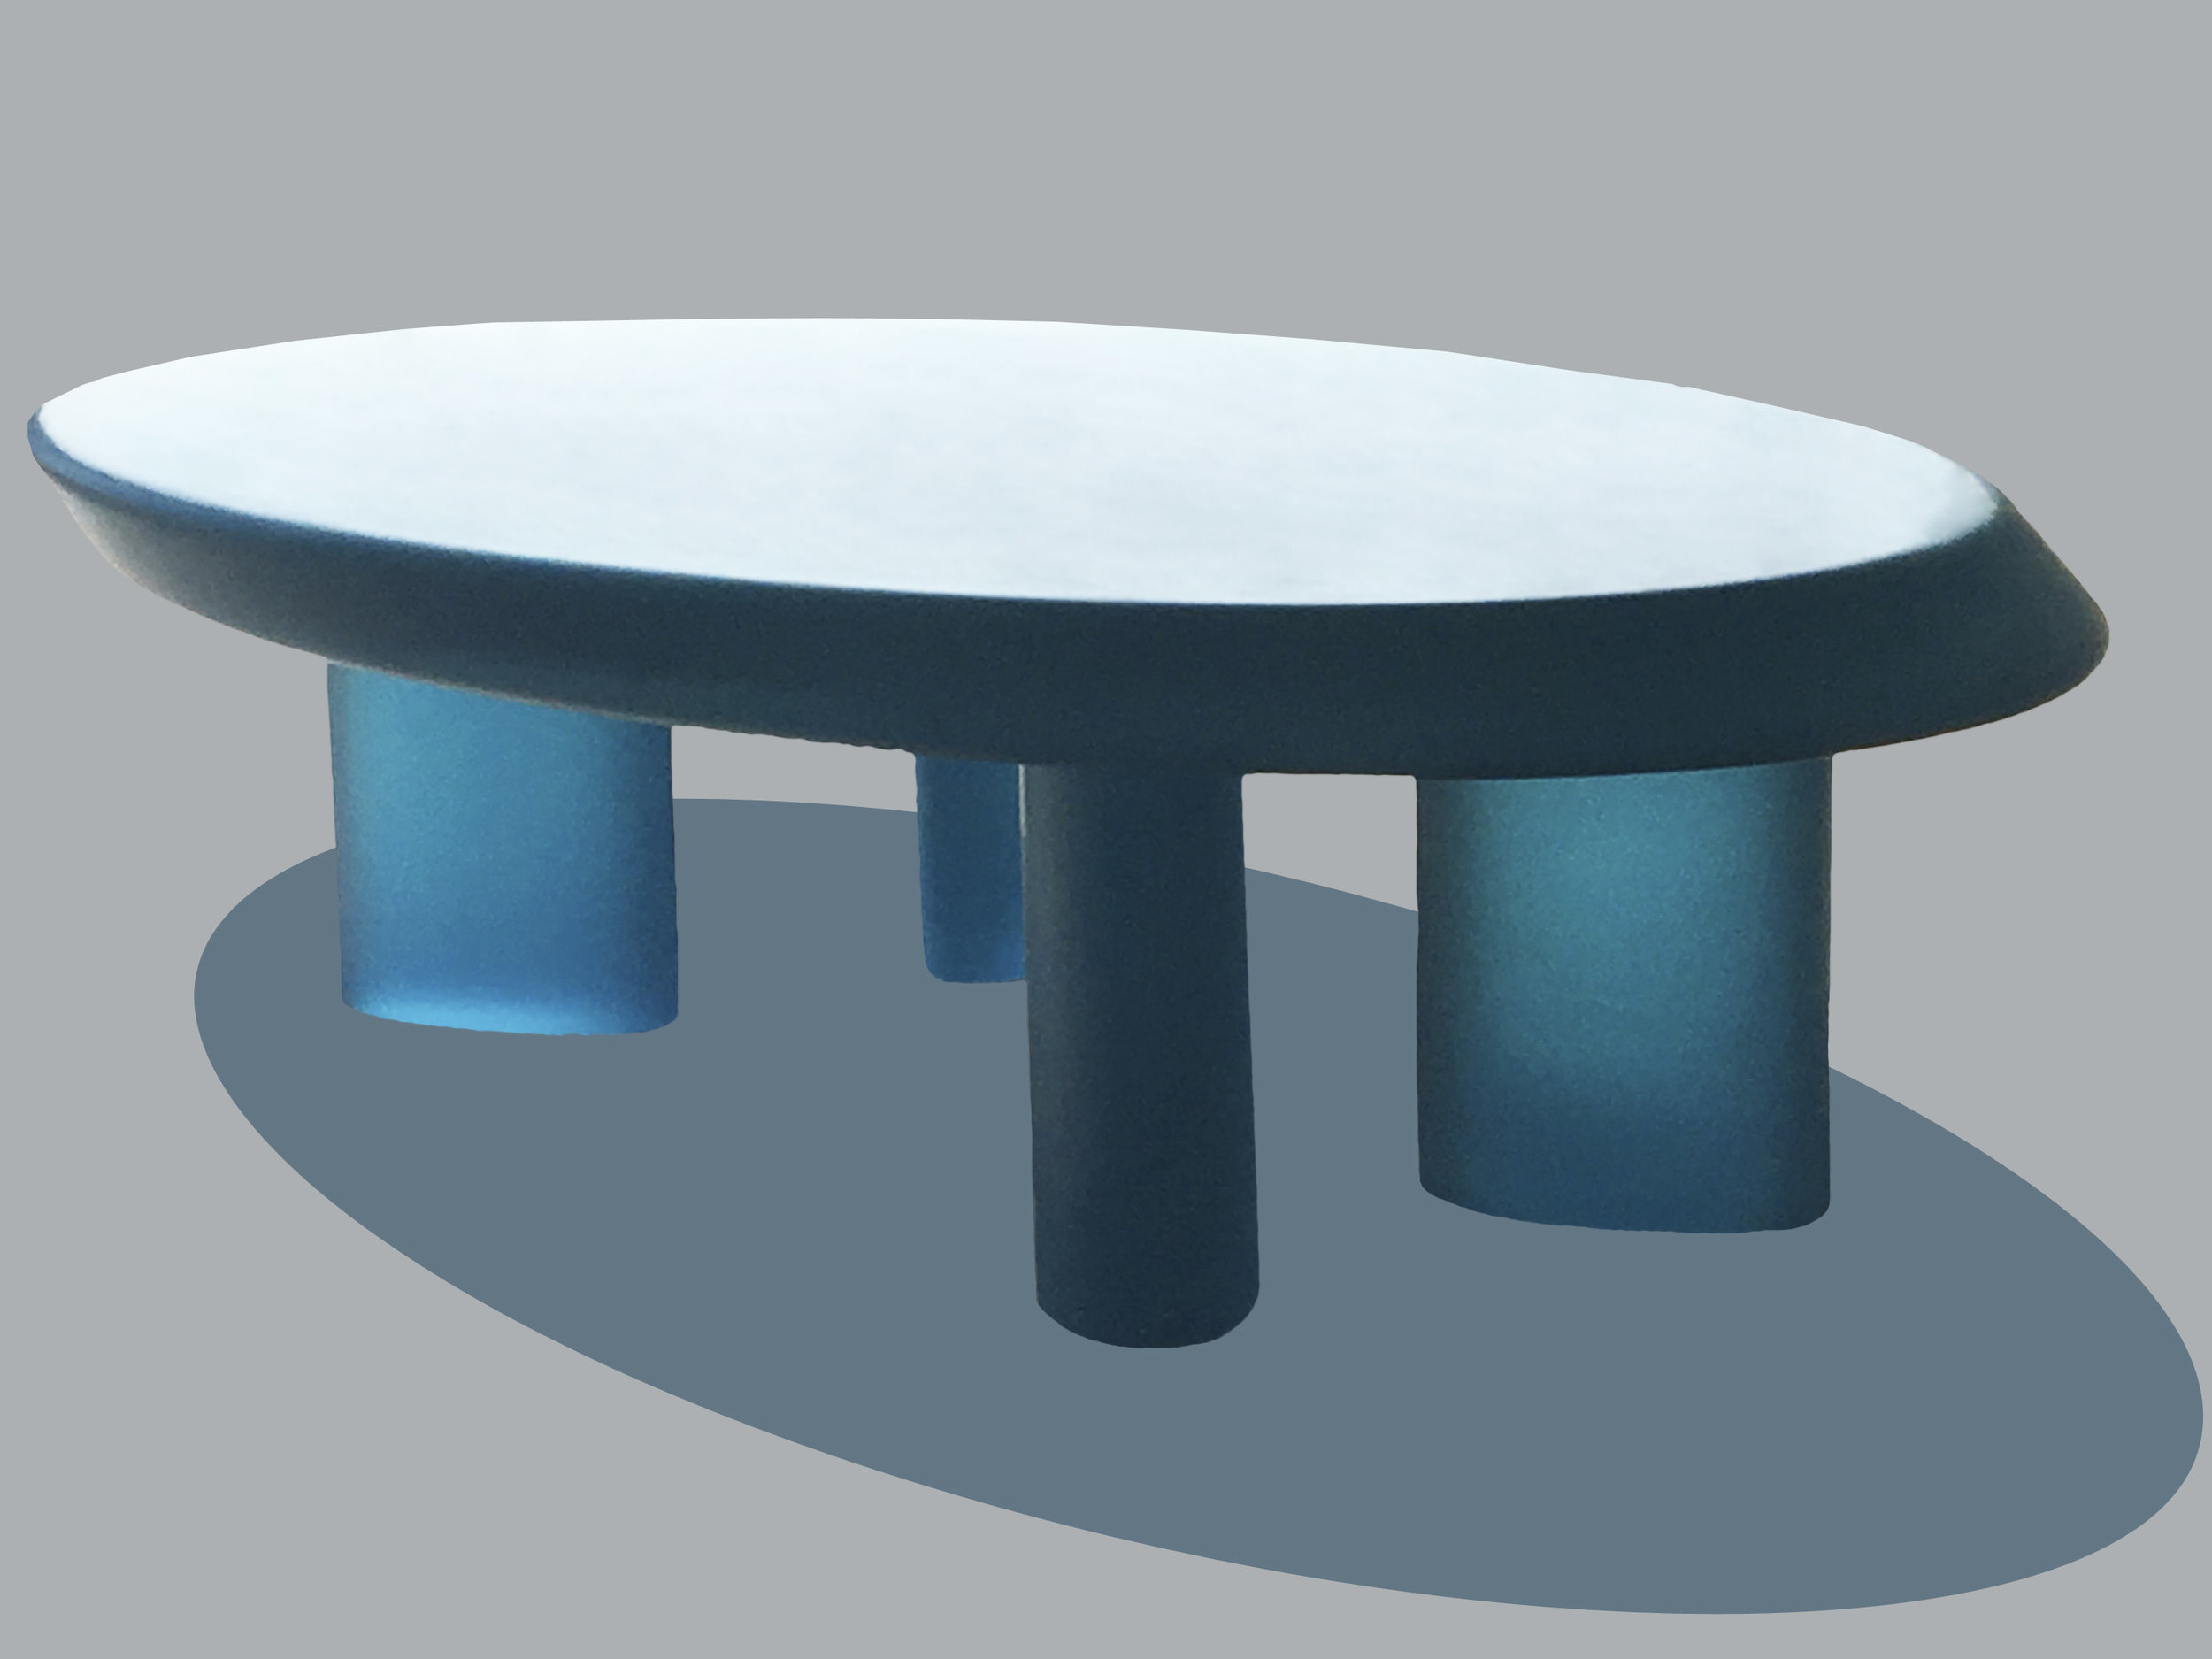 Translucent Resin Coffee Table